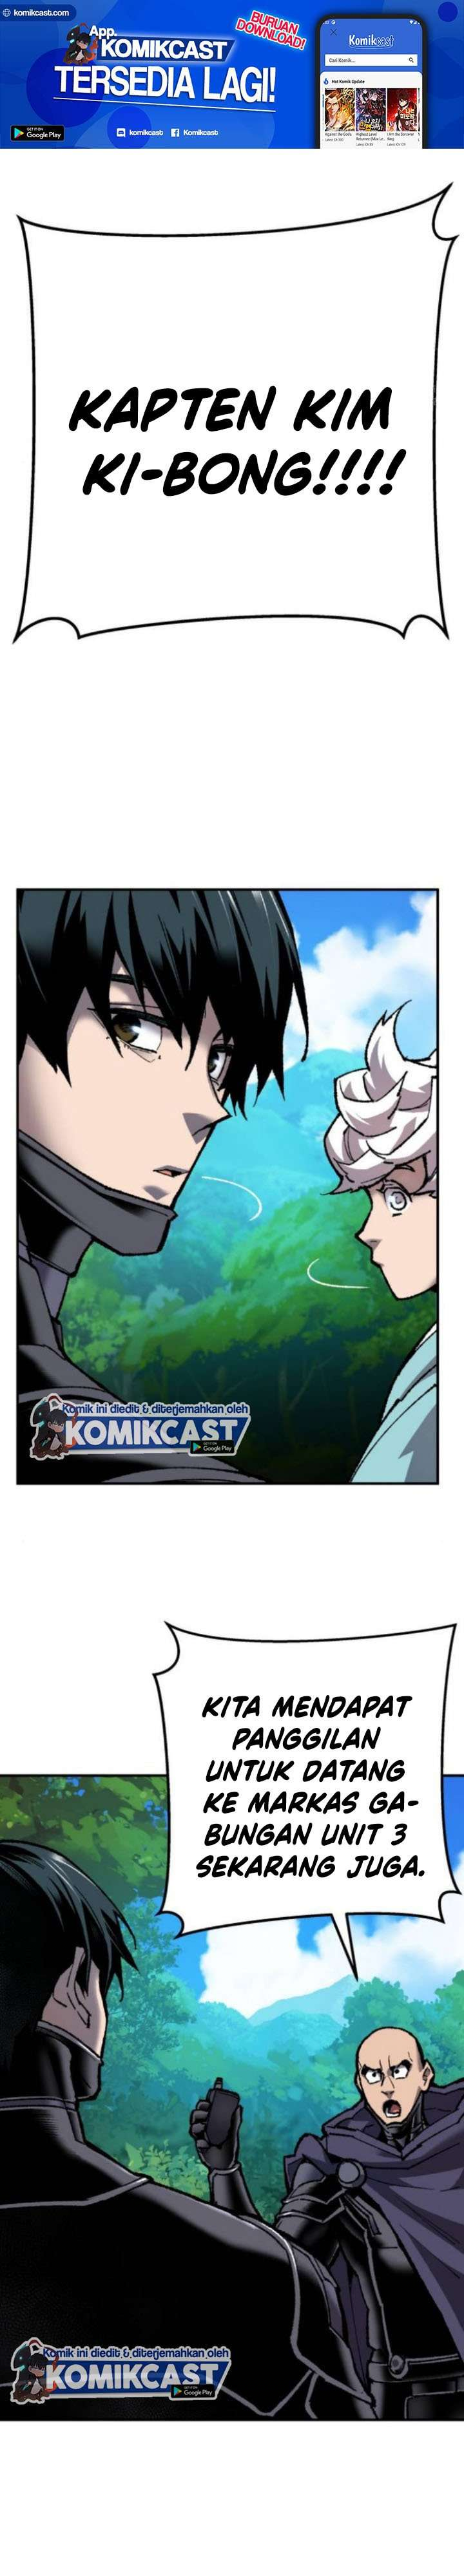 Limit Breaker Chapter 28.1 Bahasa Indonesia page 3